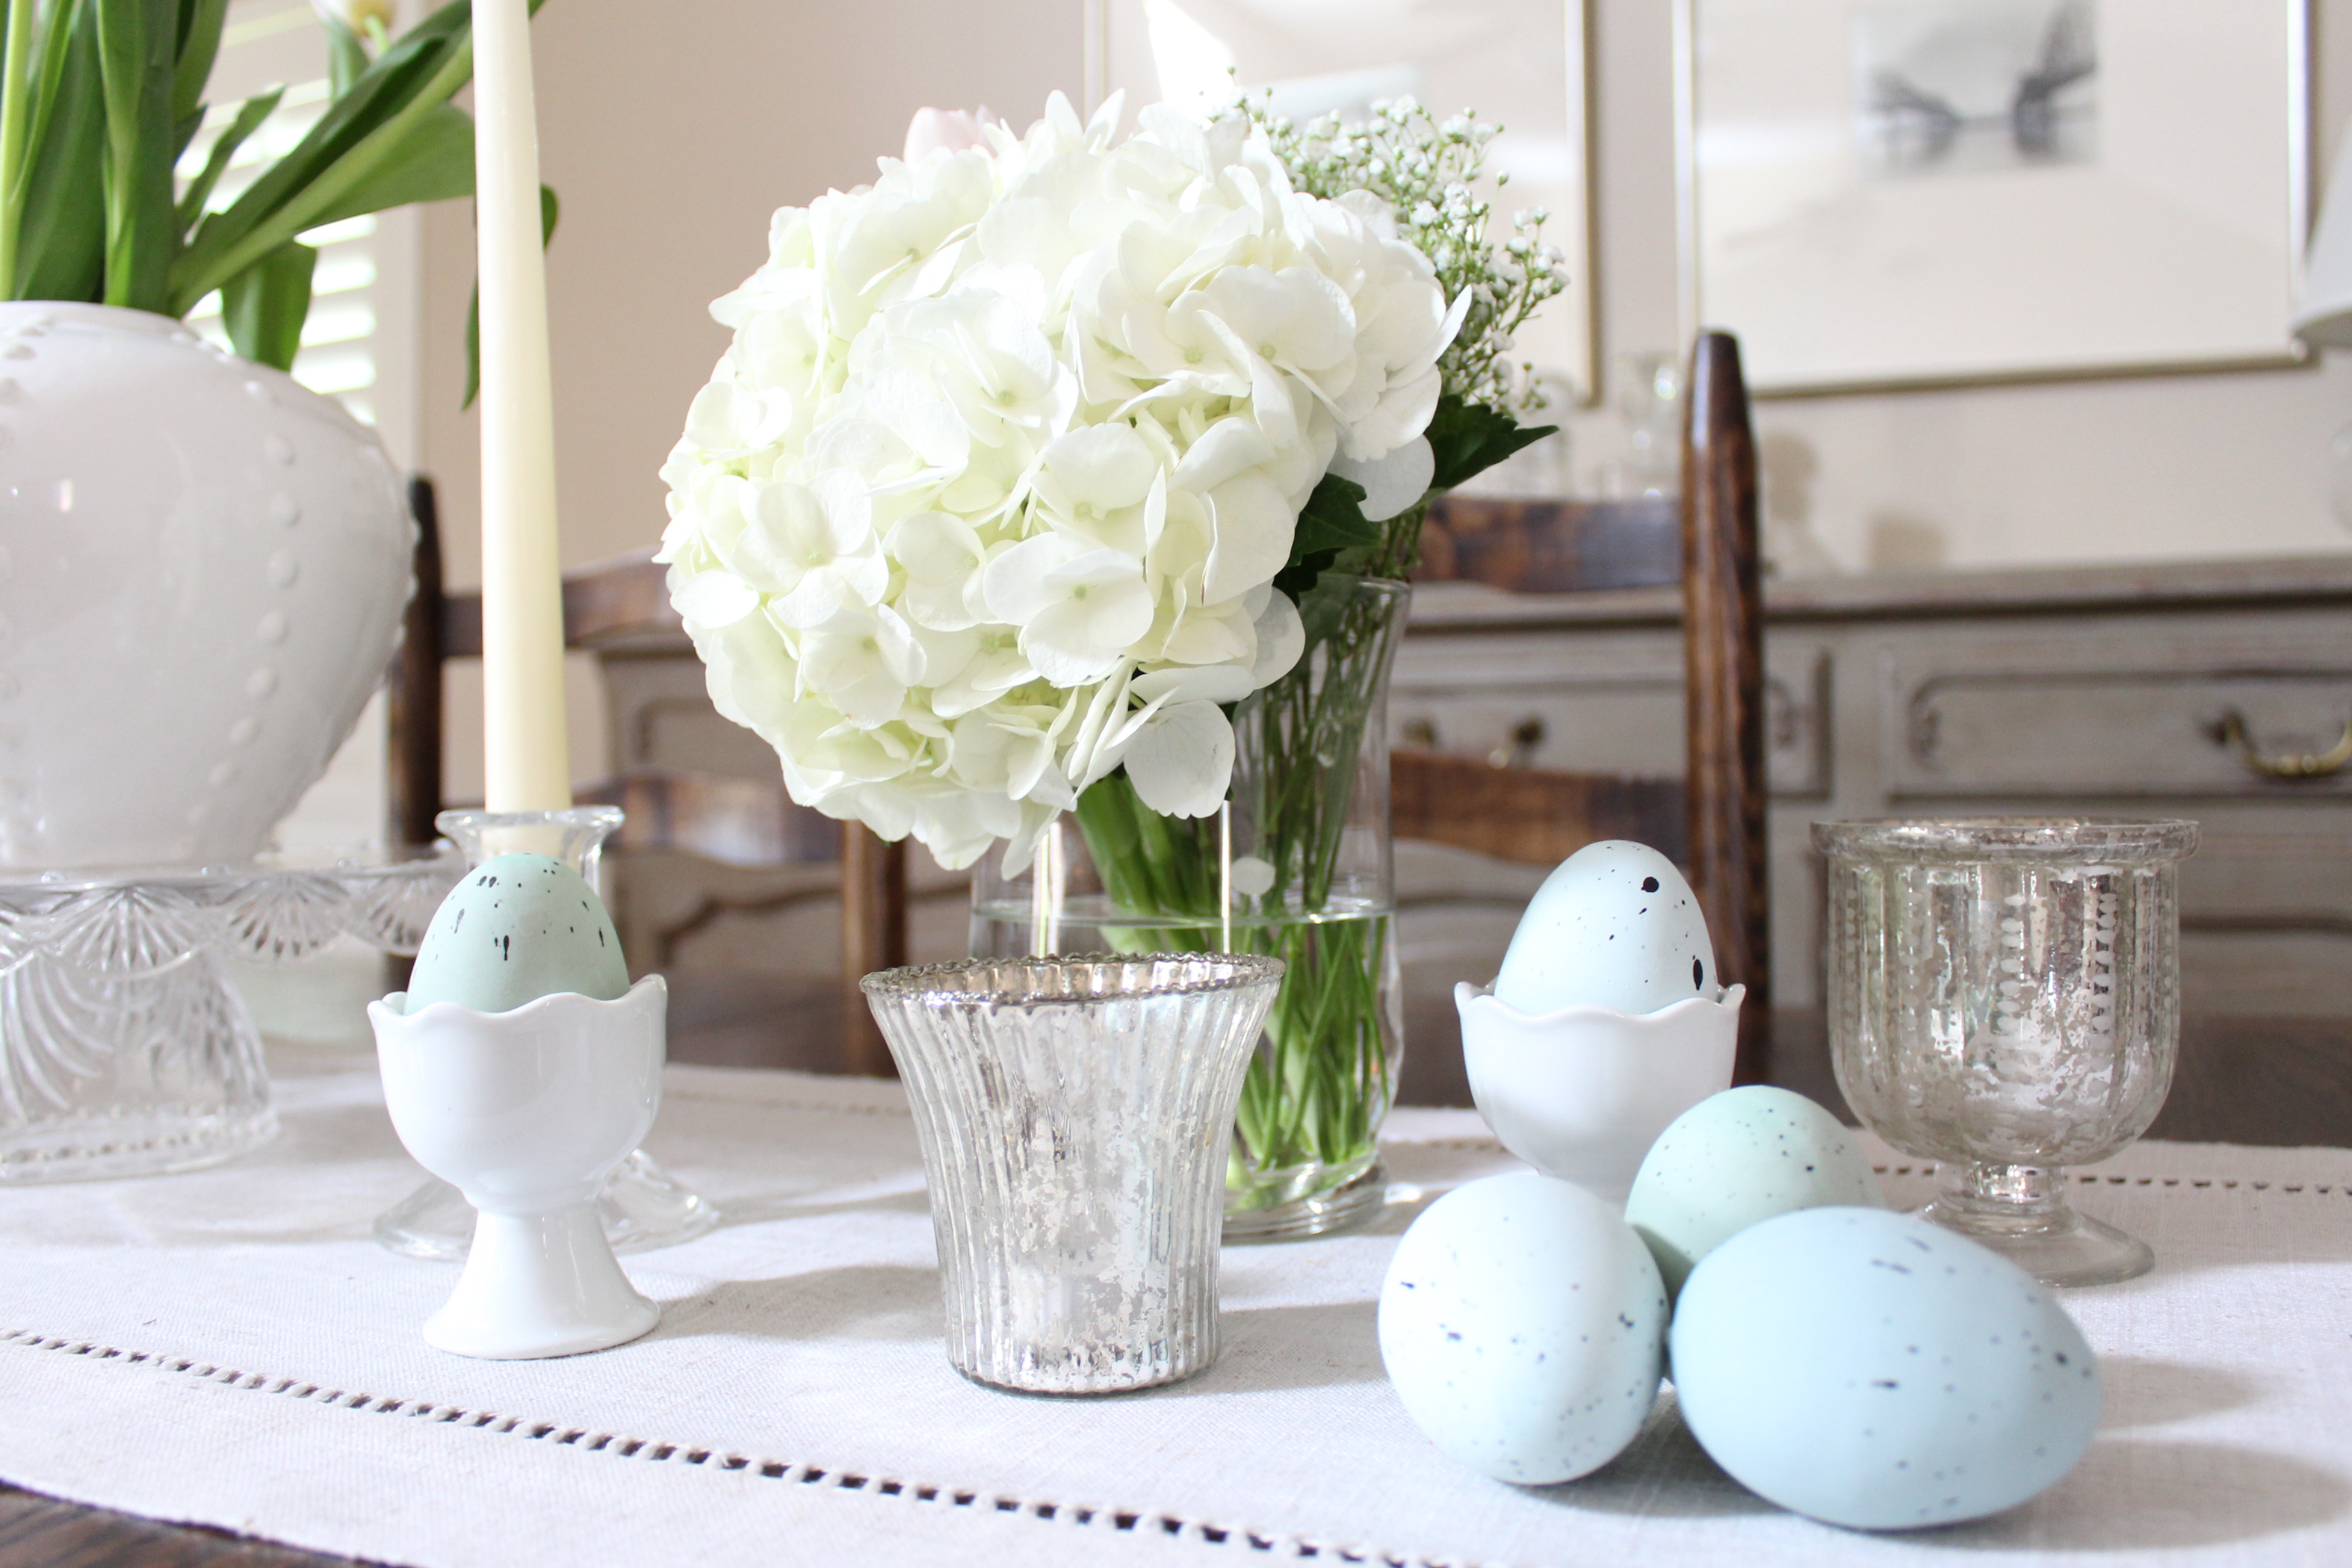 Spring Dining Accents